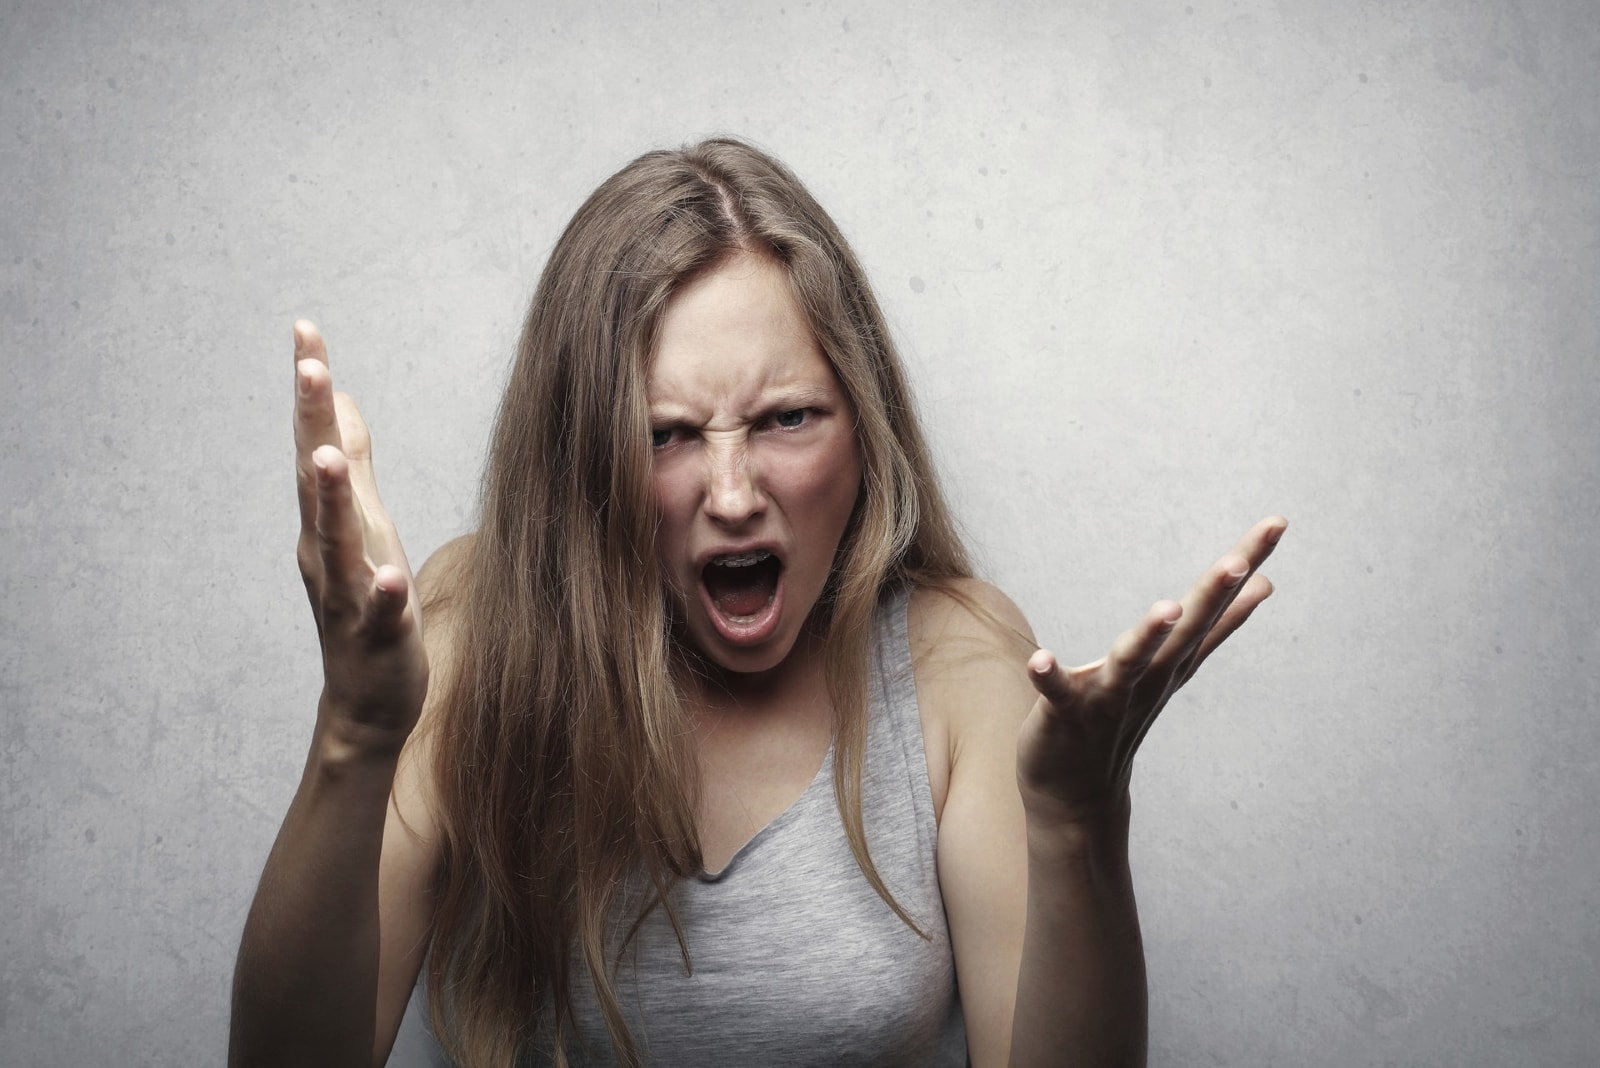 angry woman yelling while standing near wall